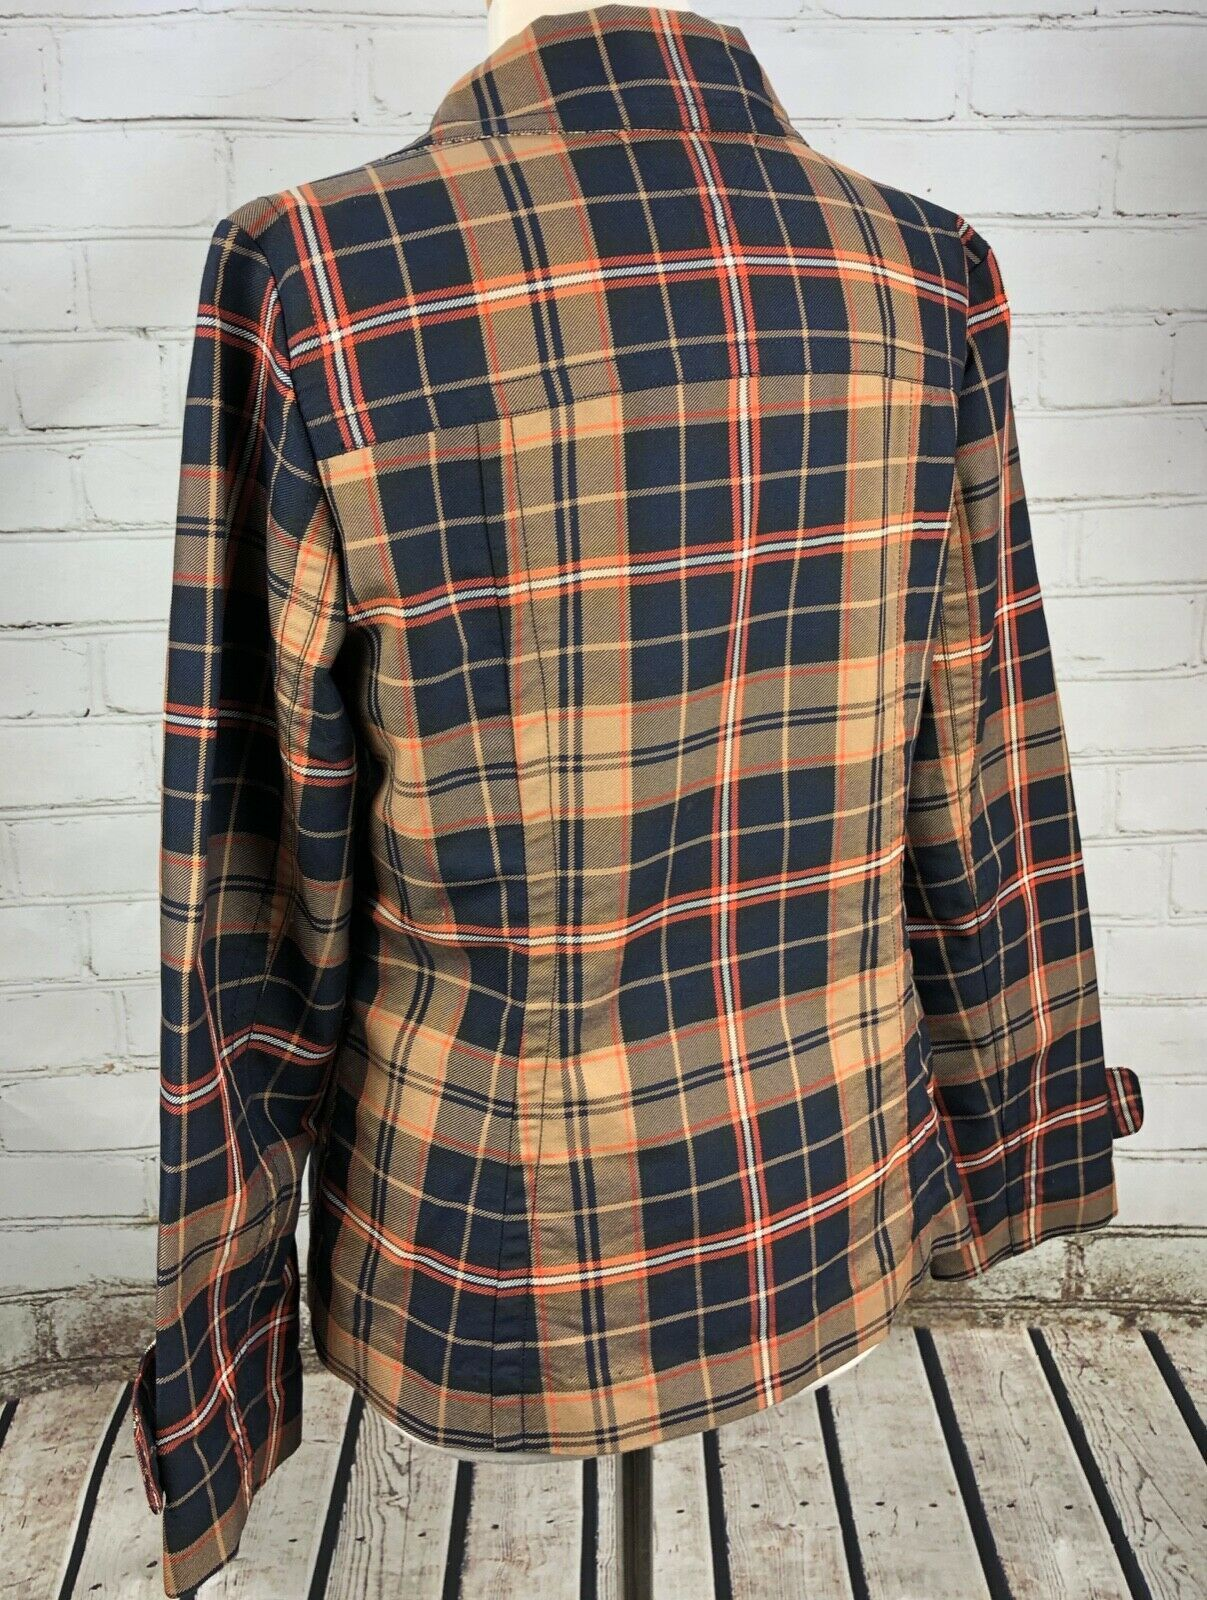 Tommy Hilfiger Jacket Plaid Lightweight Pea Coat Trench Fall Plaid Cotton Size M image 4